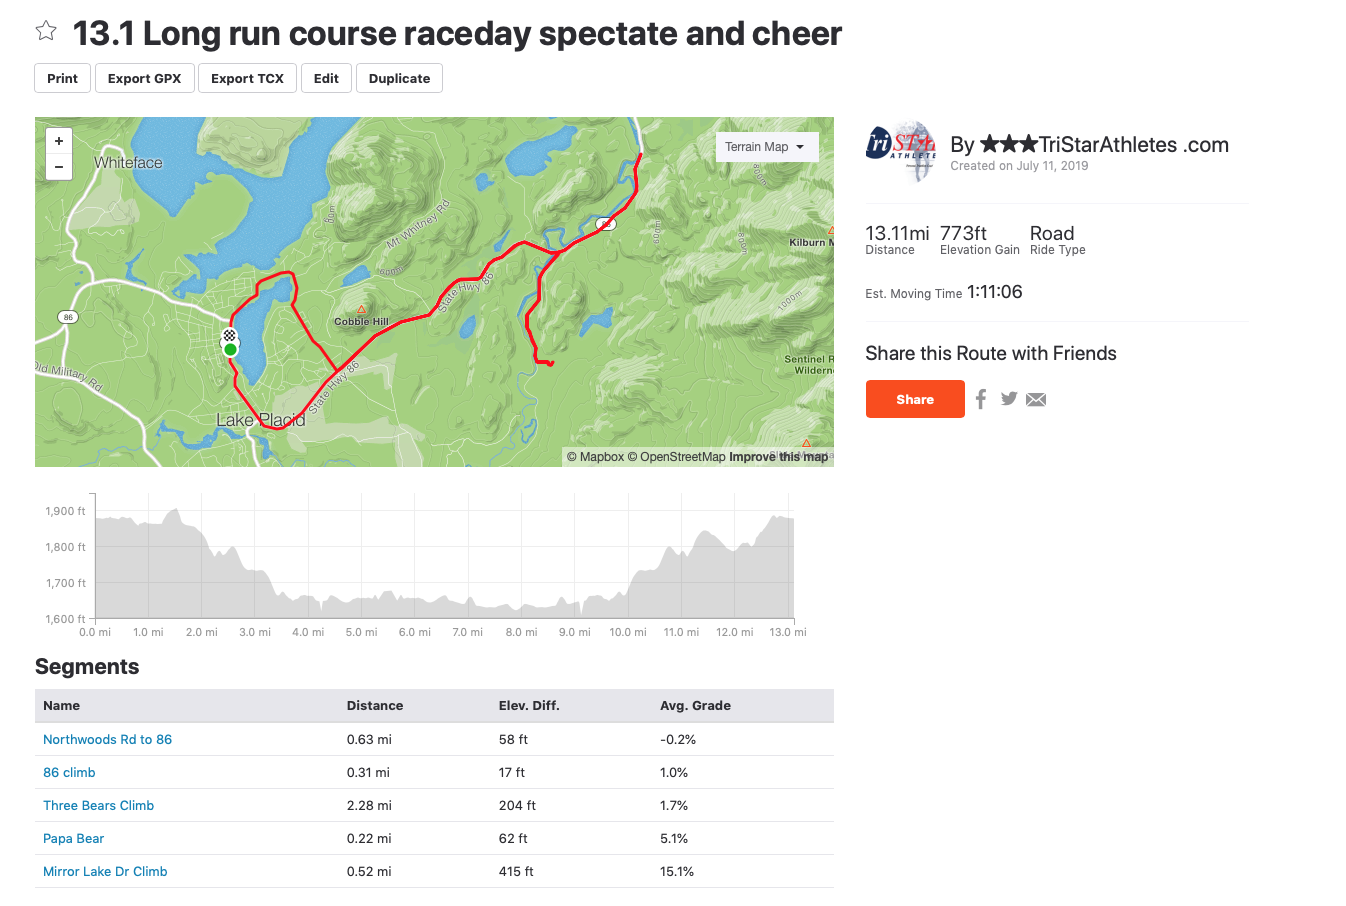 5K���♂�10K��♀�13.1mi run options - Long run out onto the bike course + river rd and back to town.